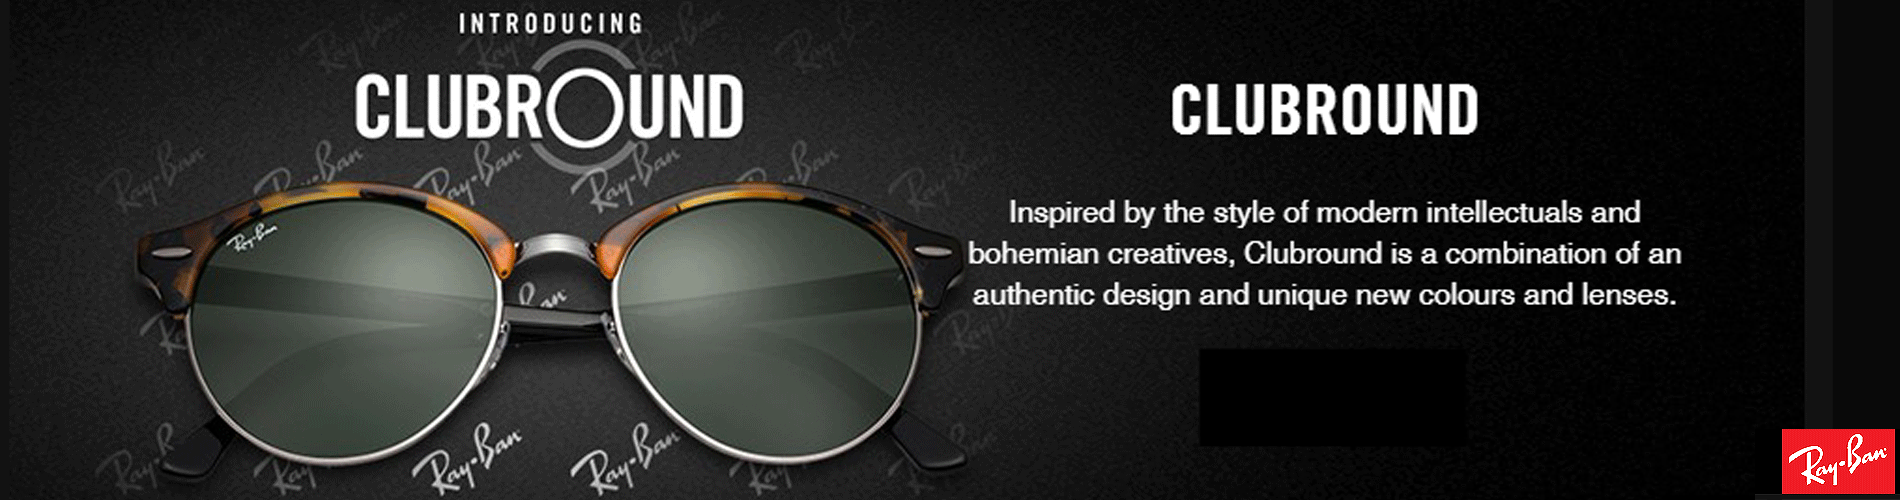 Ray ban sunglasses new design - Ray Ban Clubmaster Round